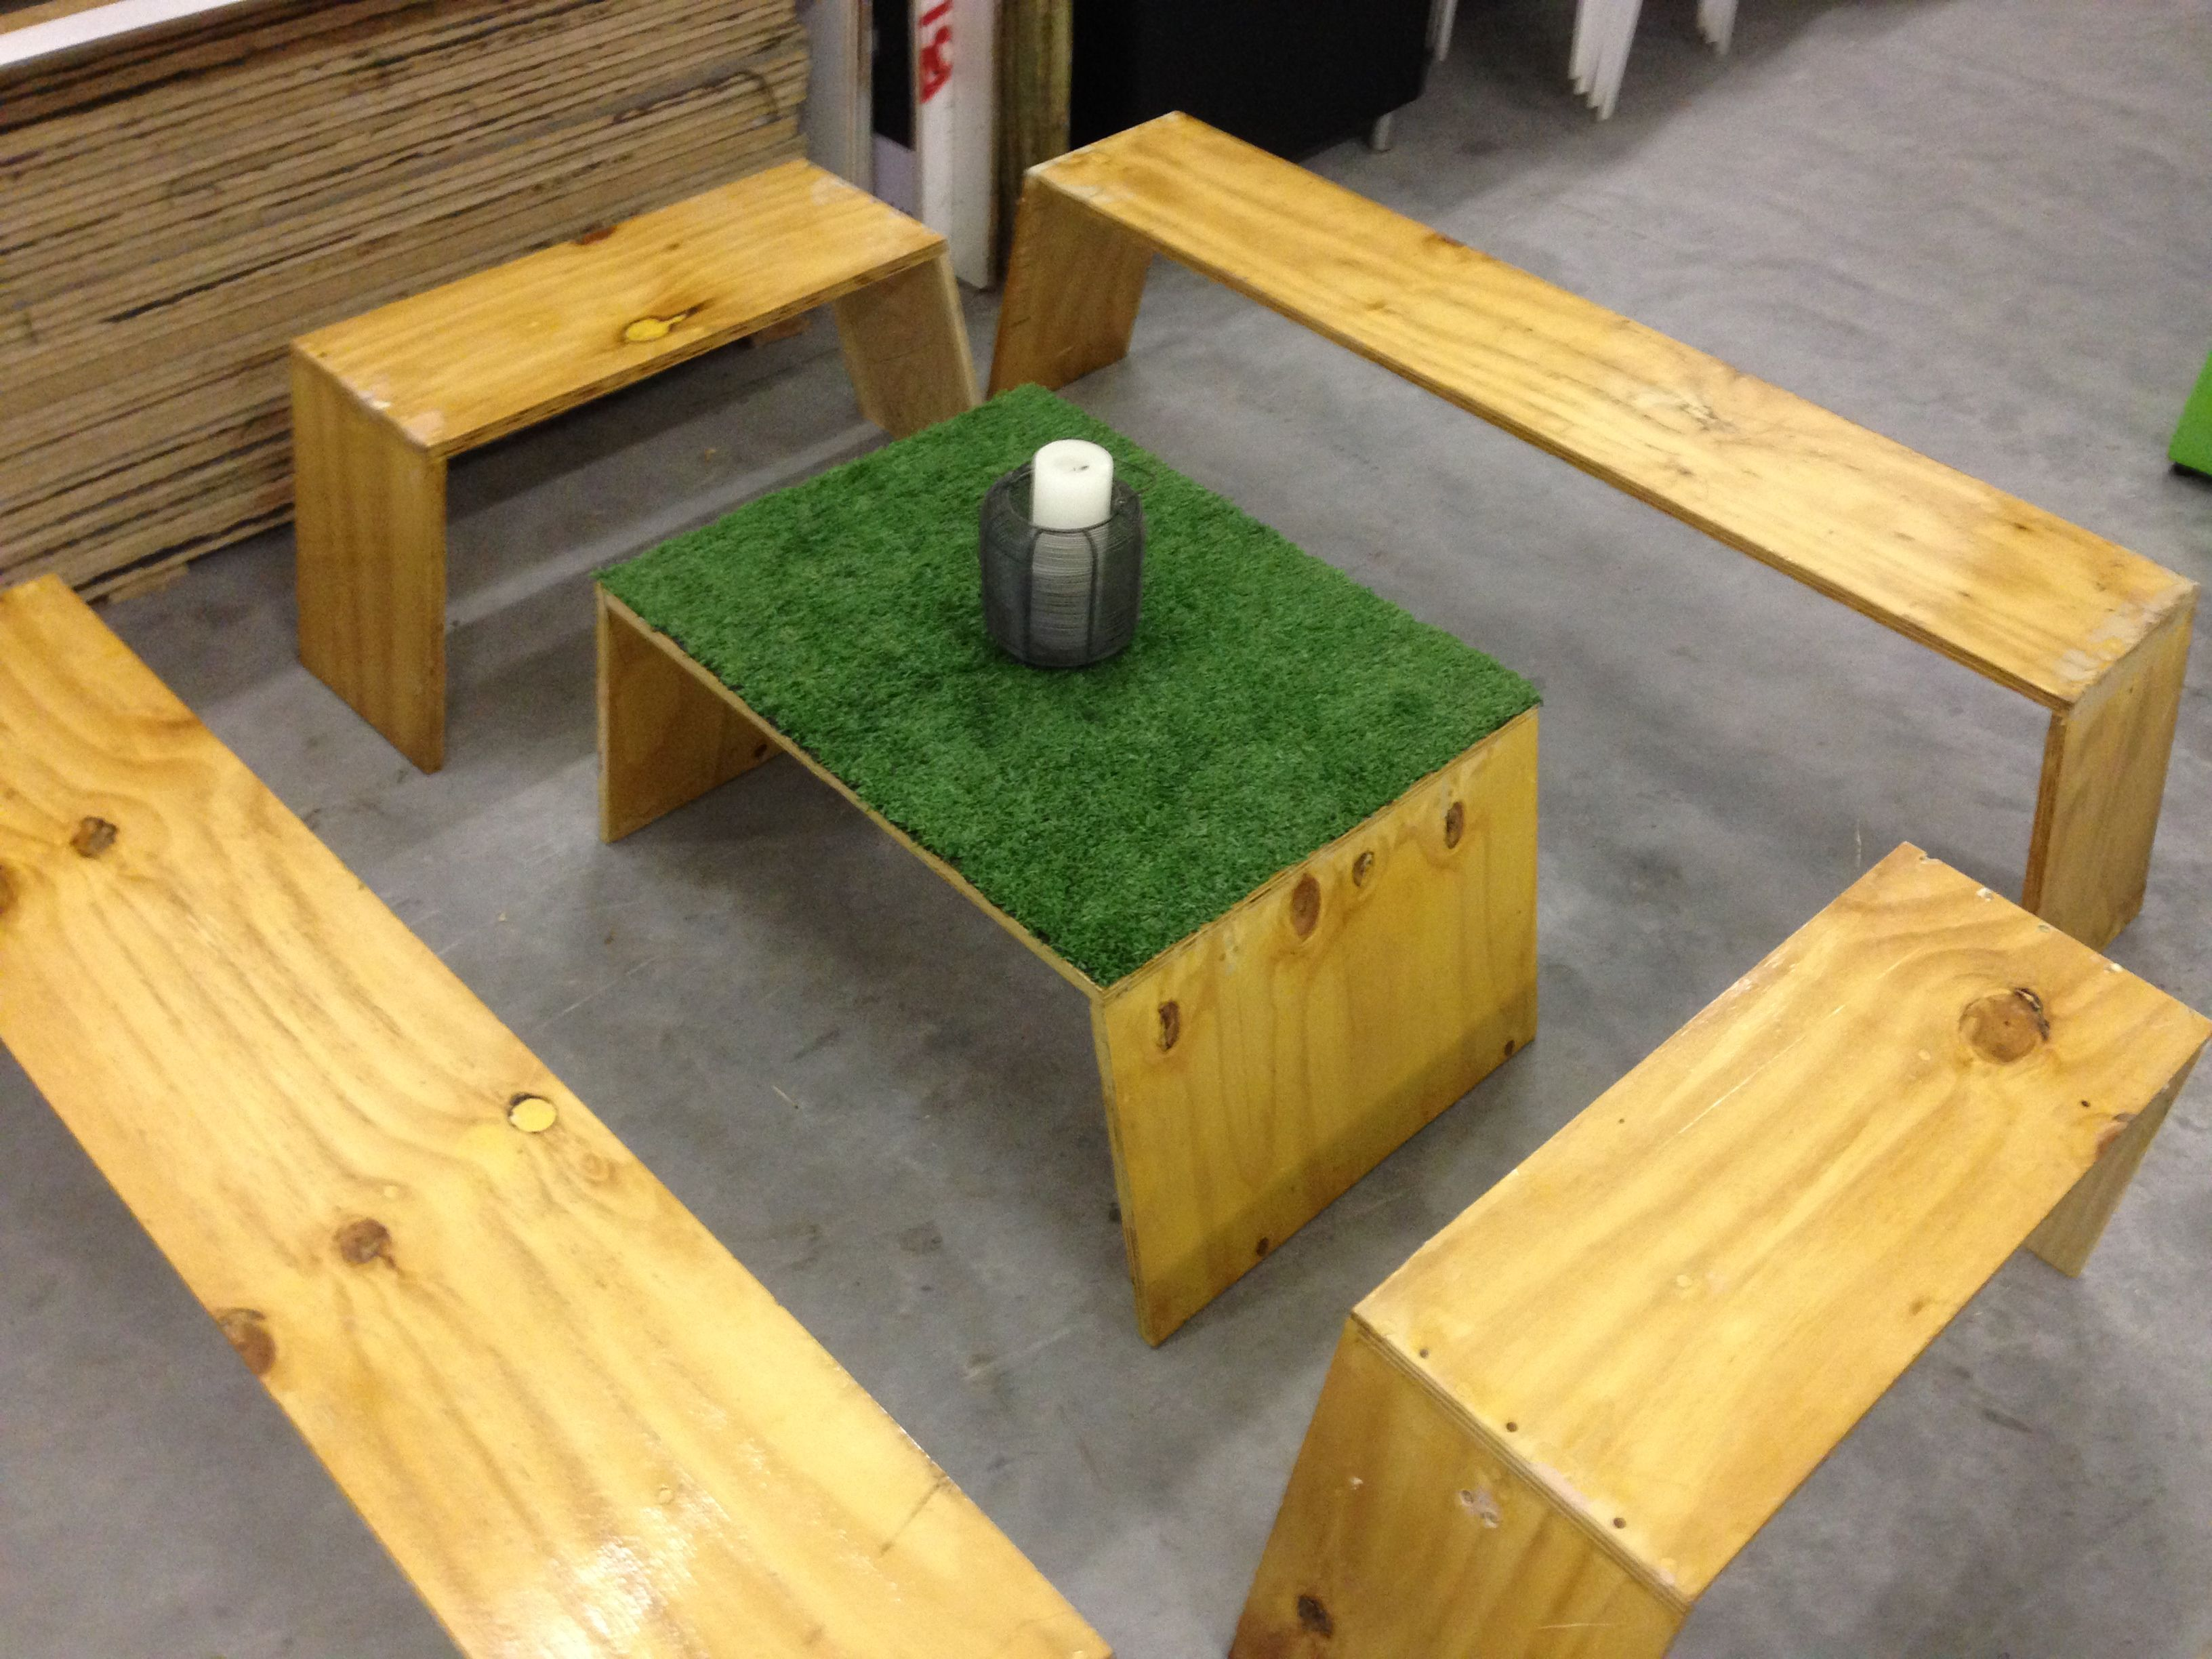 Reclaimed Shutter Ply Bench Set With Artificial Grass Detail